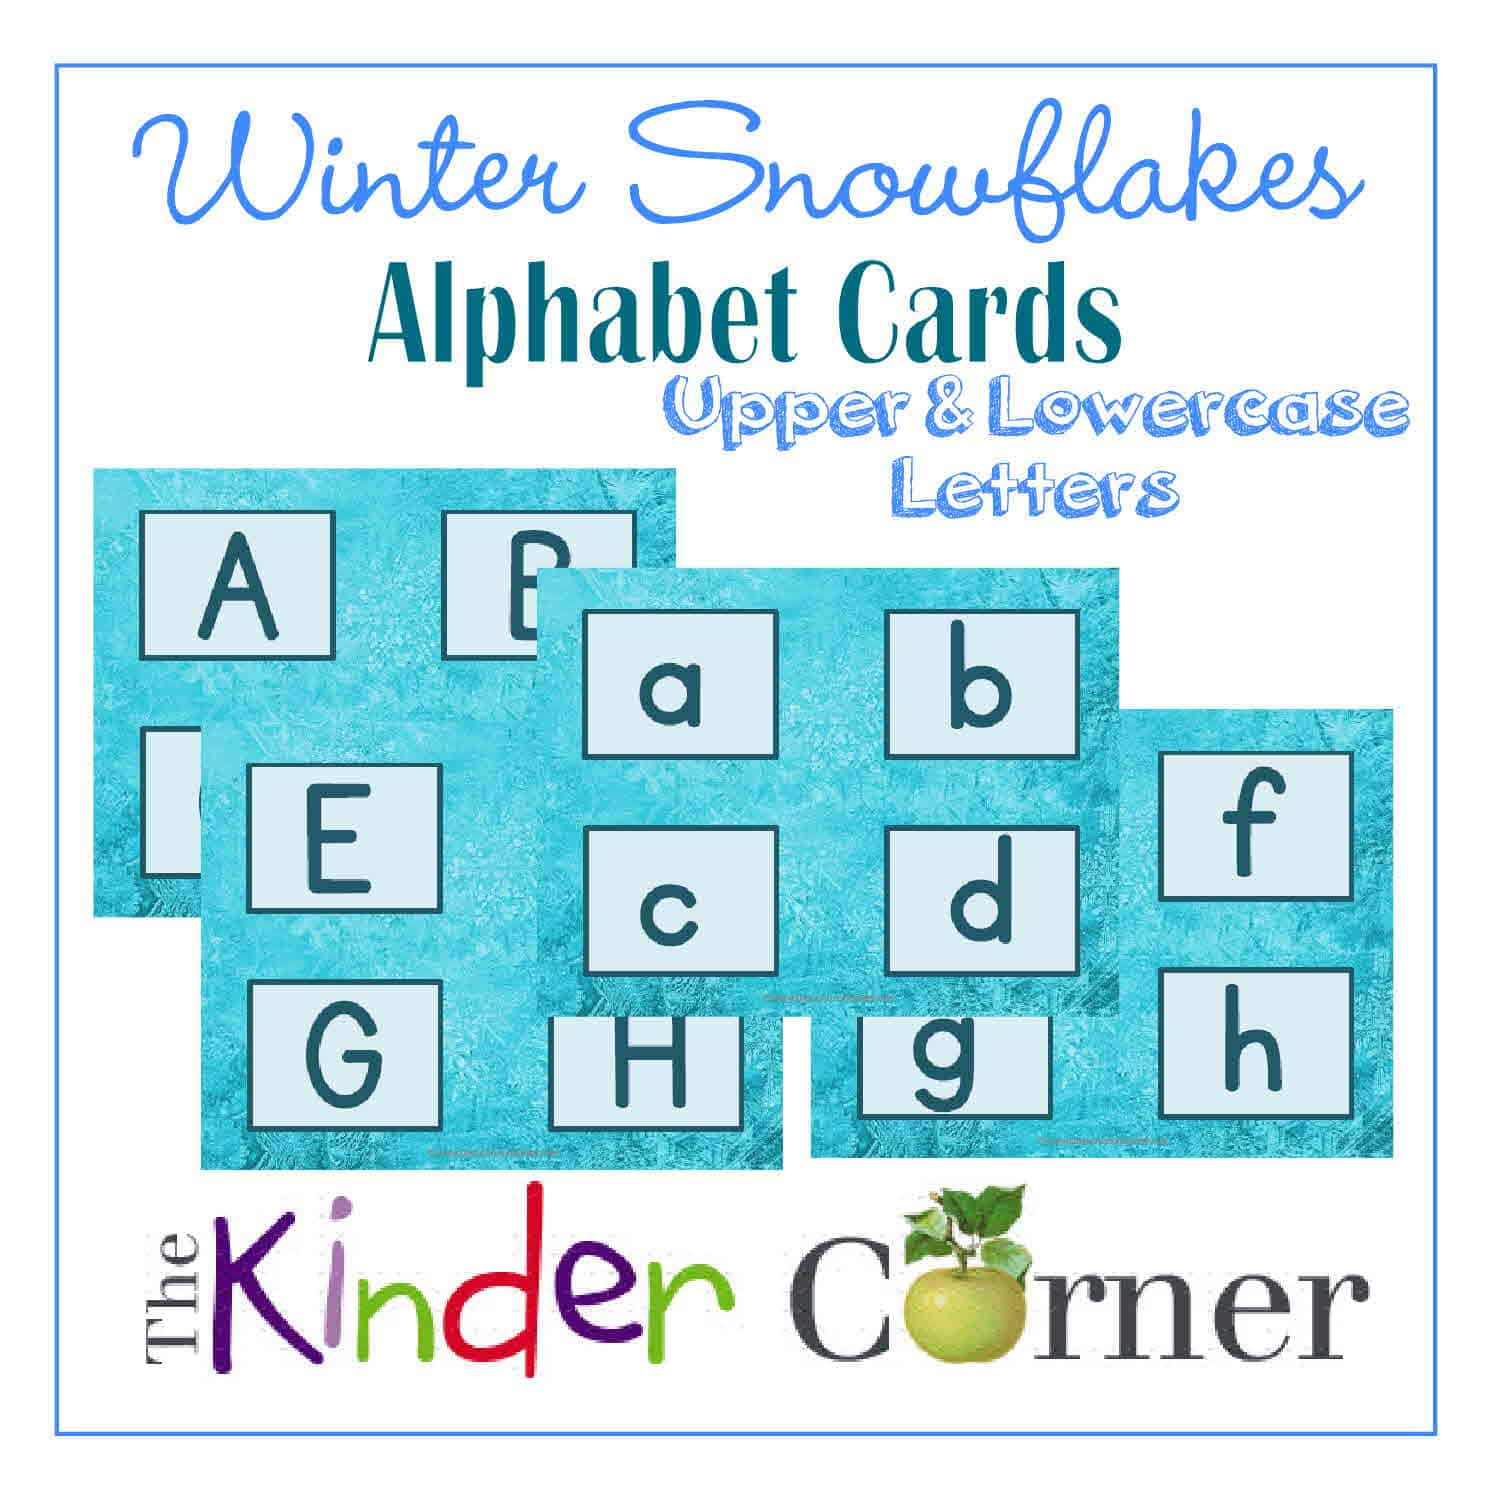 Winter Snowflakes Upper and Lowercase Letter Cards